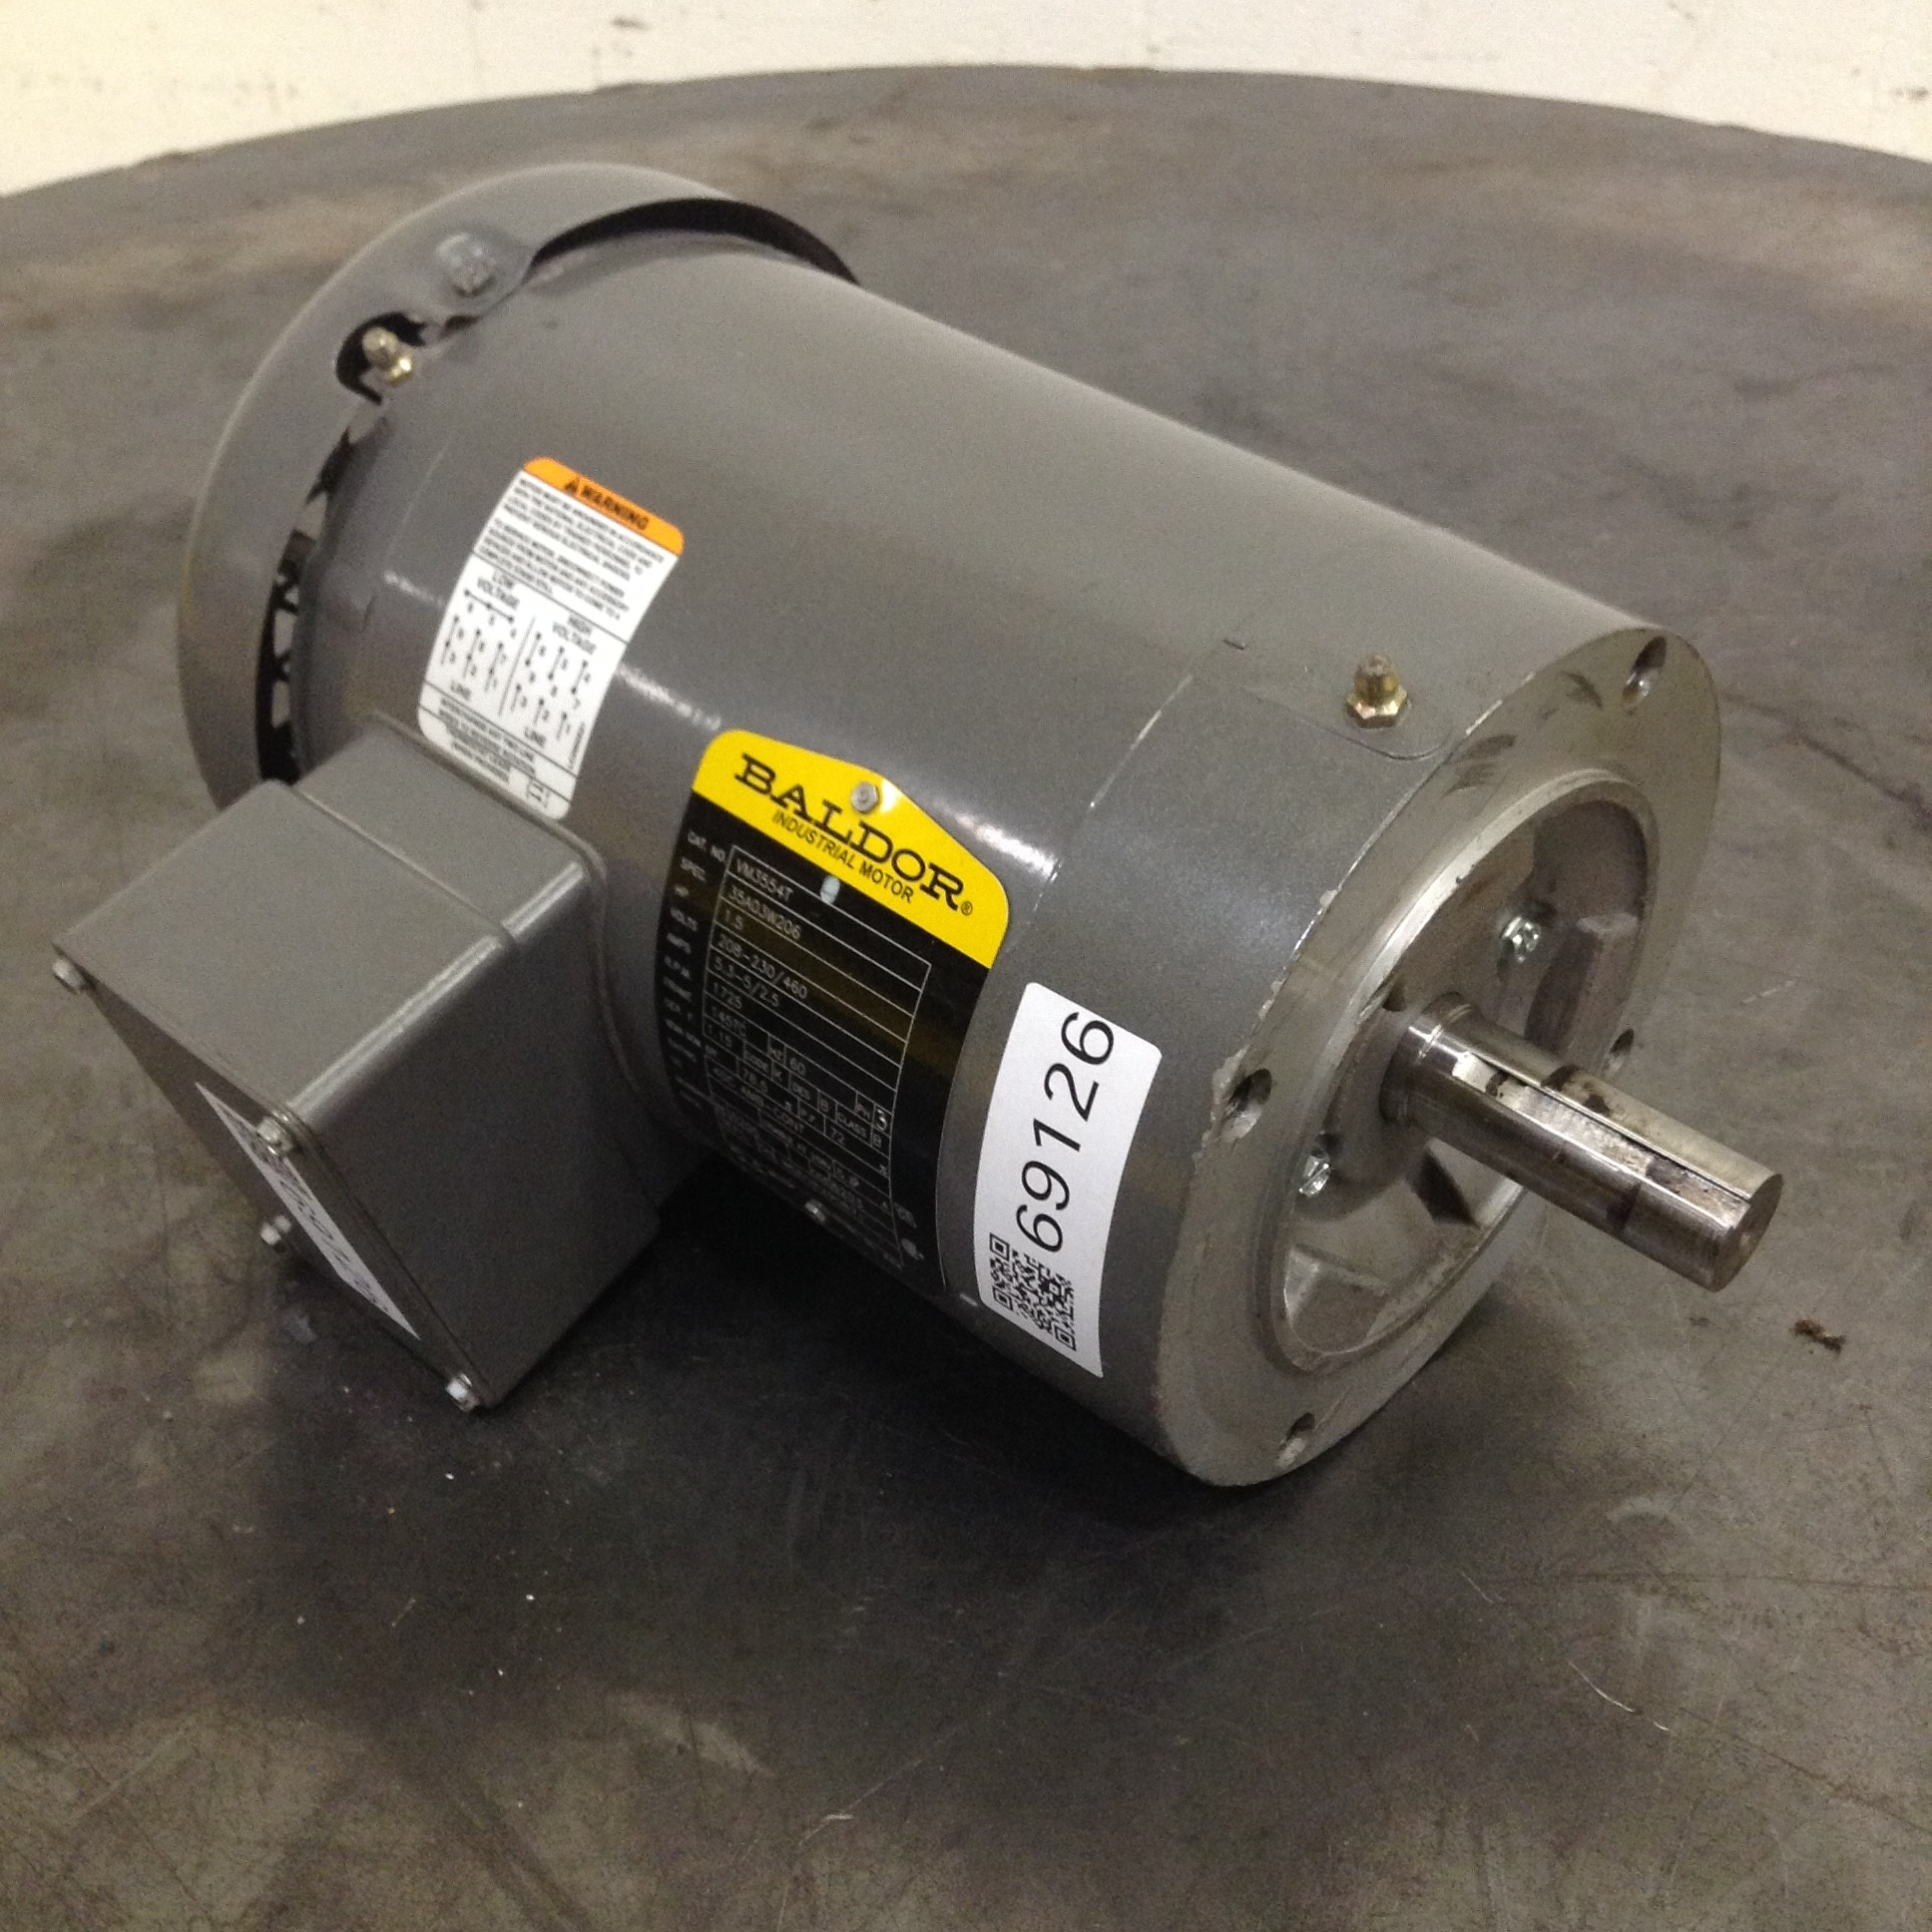 Baldor 1 5 hp electric motor vm3554t used 69126 ebay for 1 5 hp electric motor